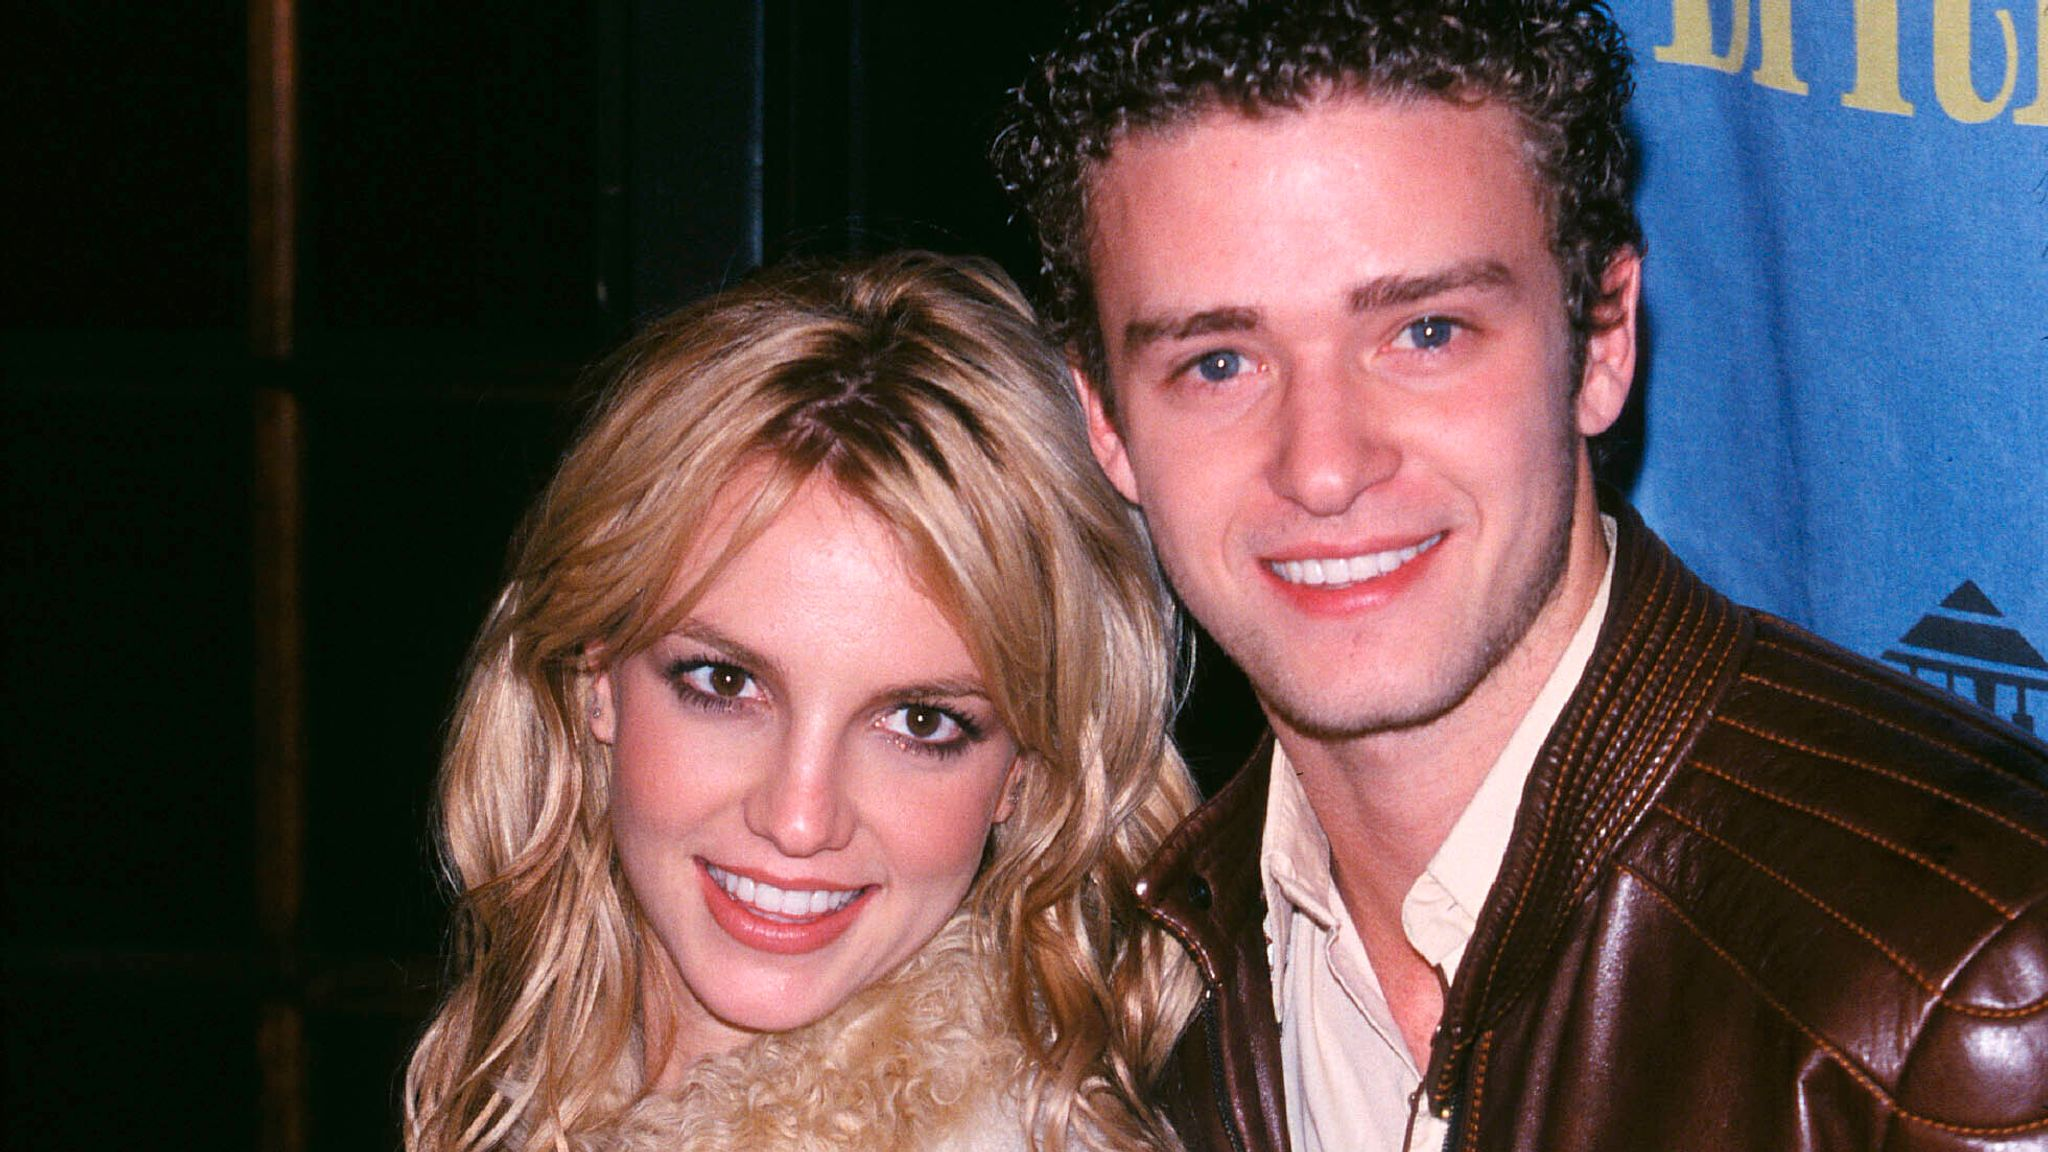 Spears timberlake and What did